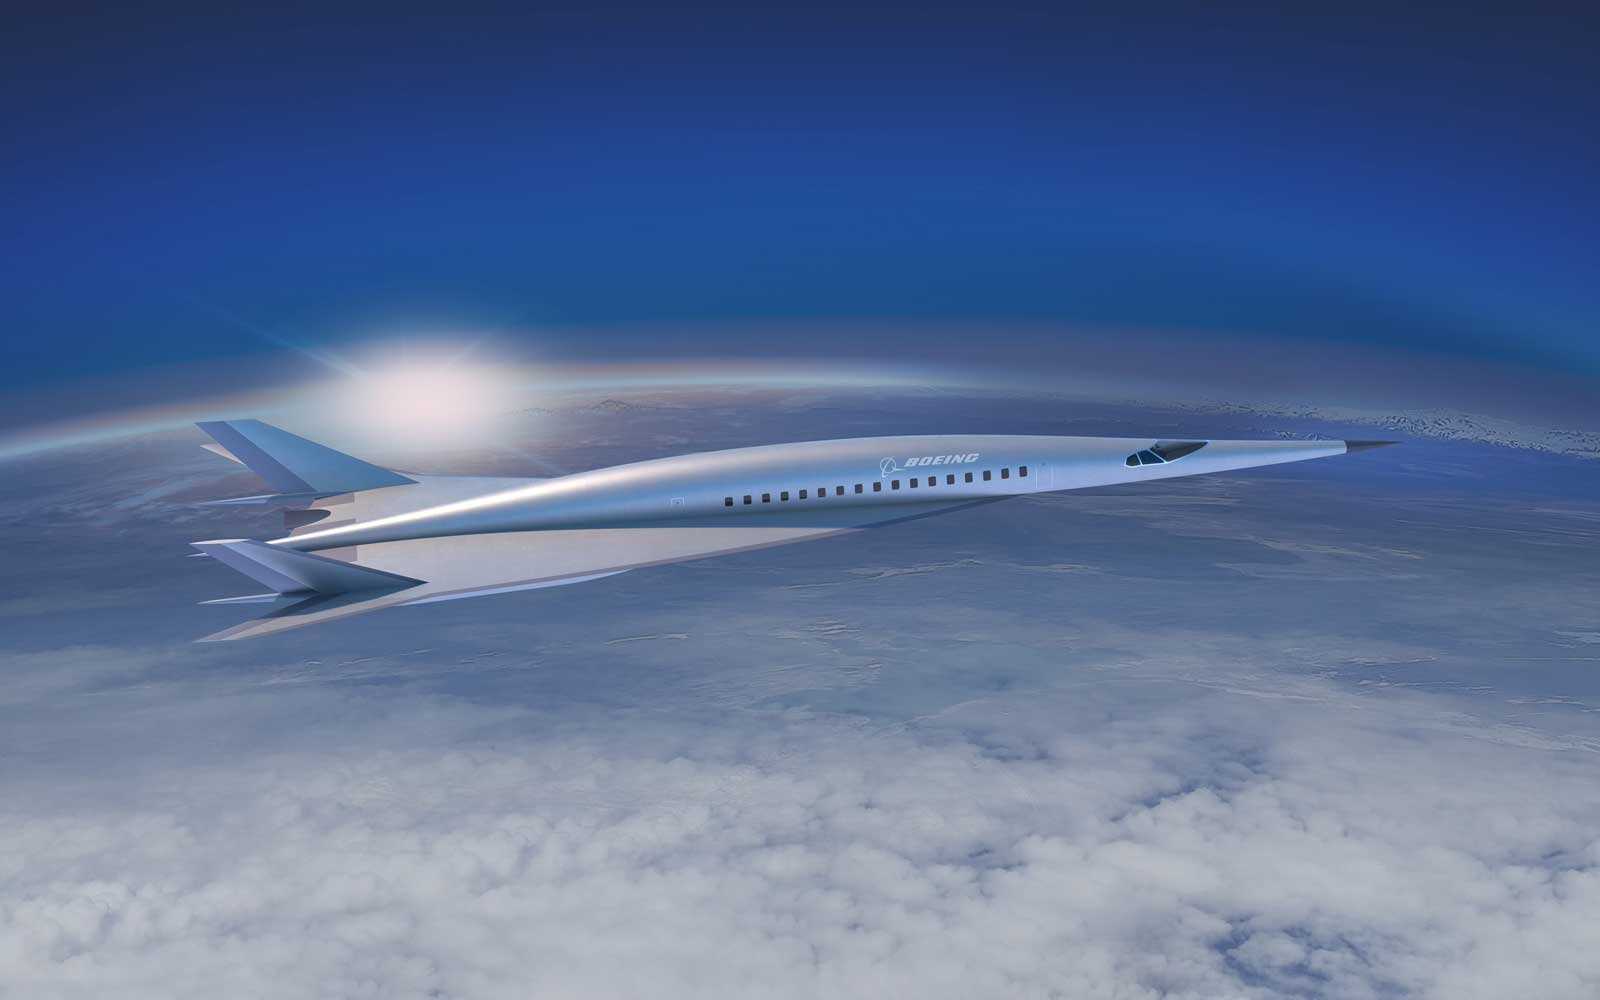 Boeing unveils concept for hypersonic passenger jet